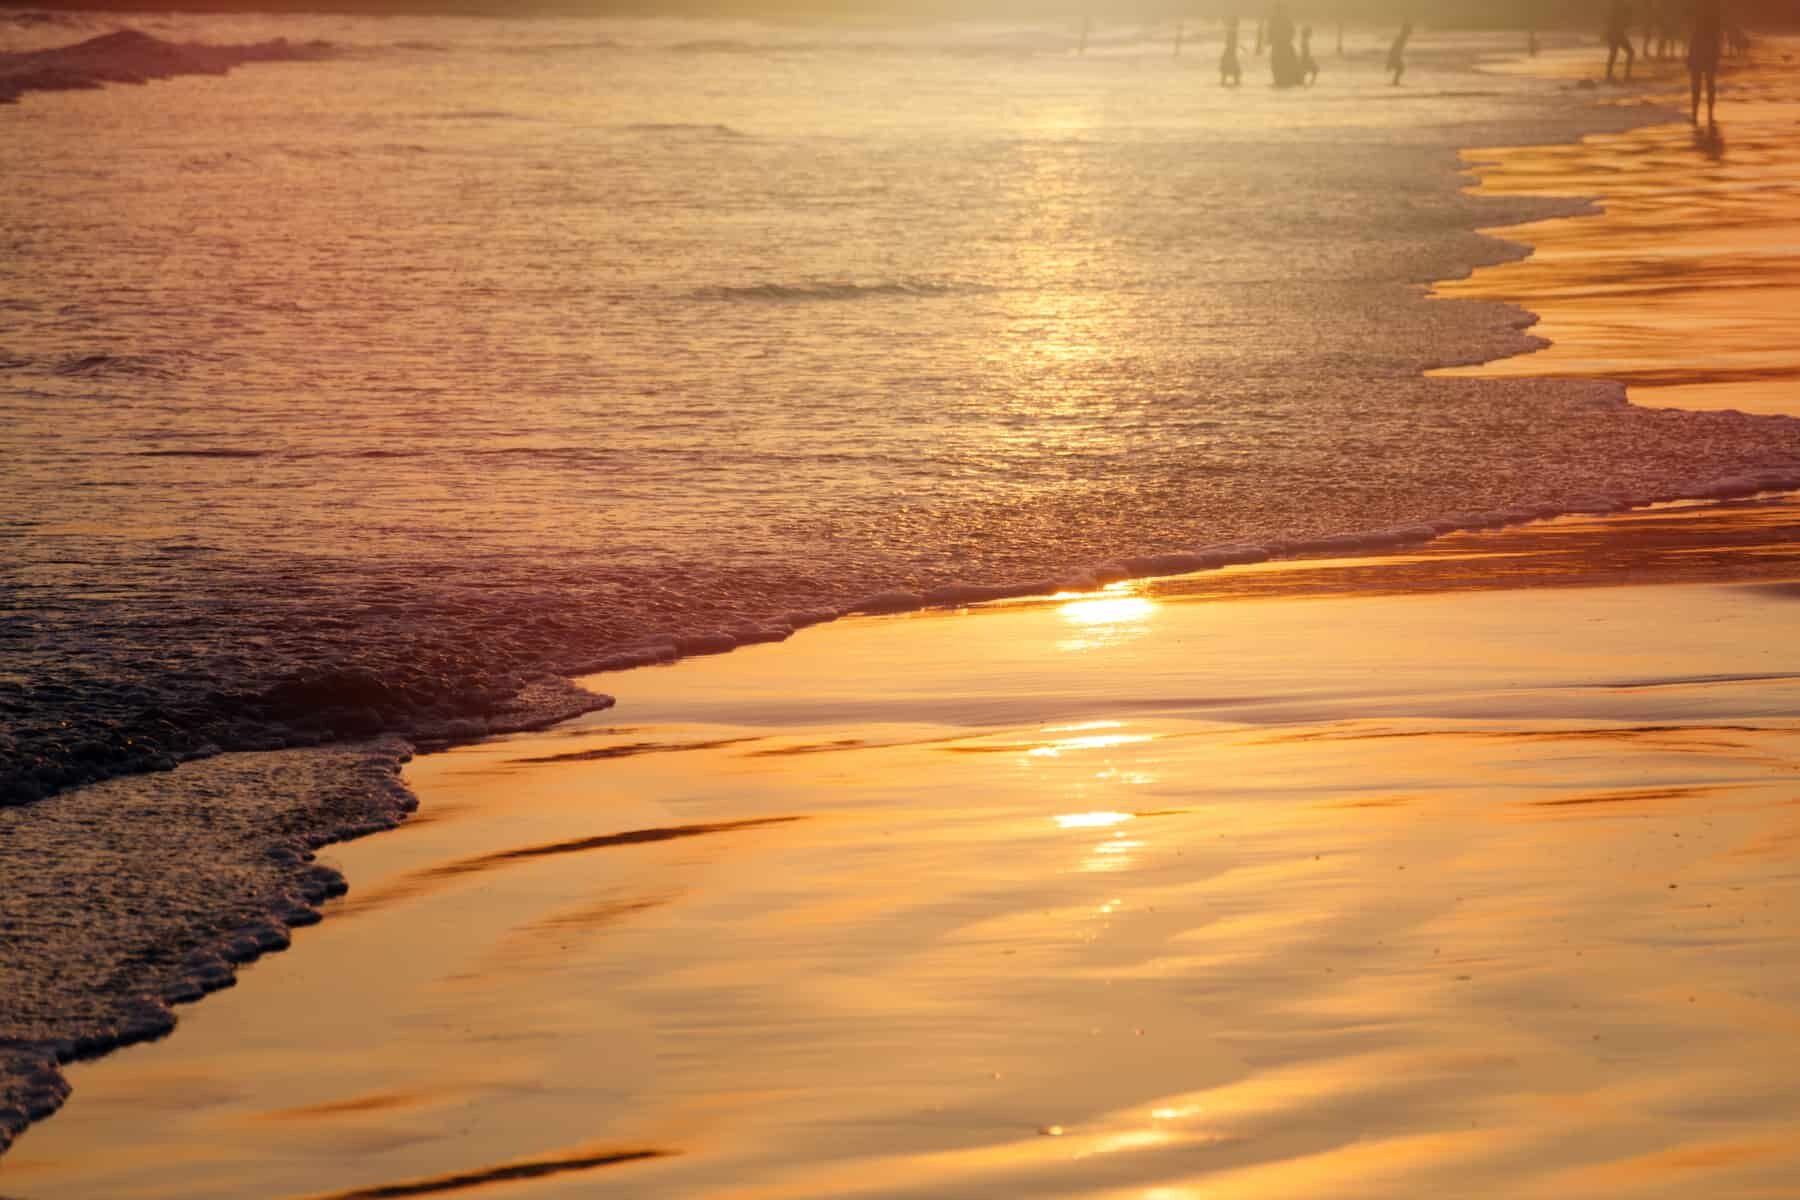 Sunset on tropical beach in Sri Lanka - golden color waves sea water, silhouette of people on background